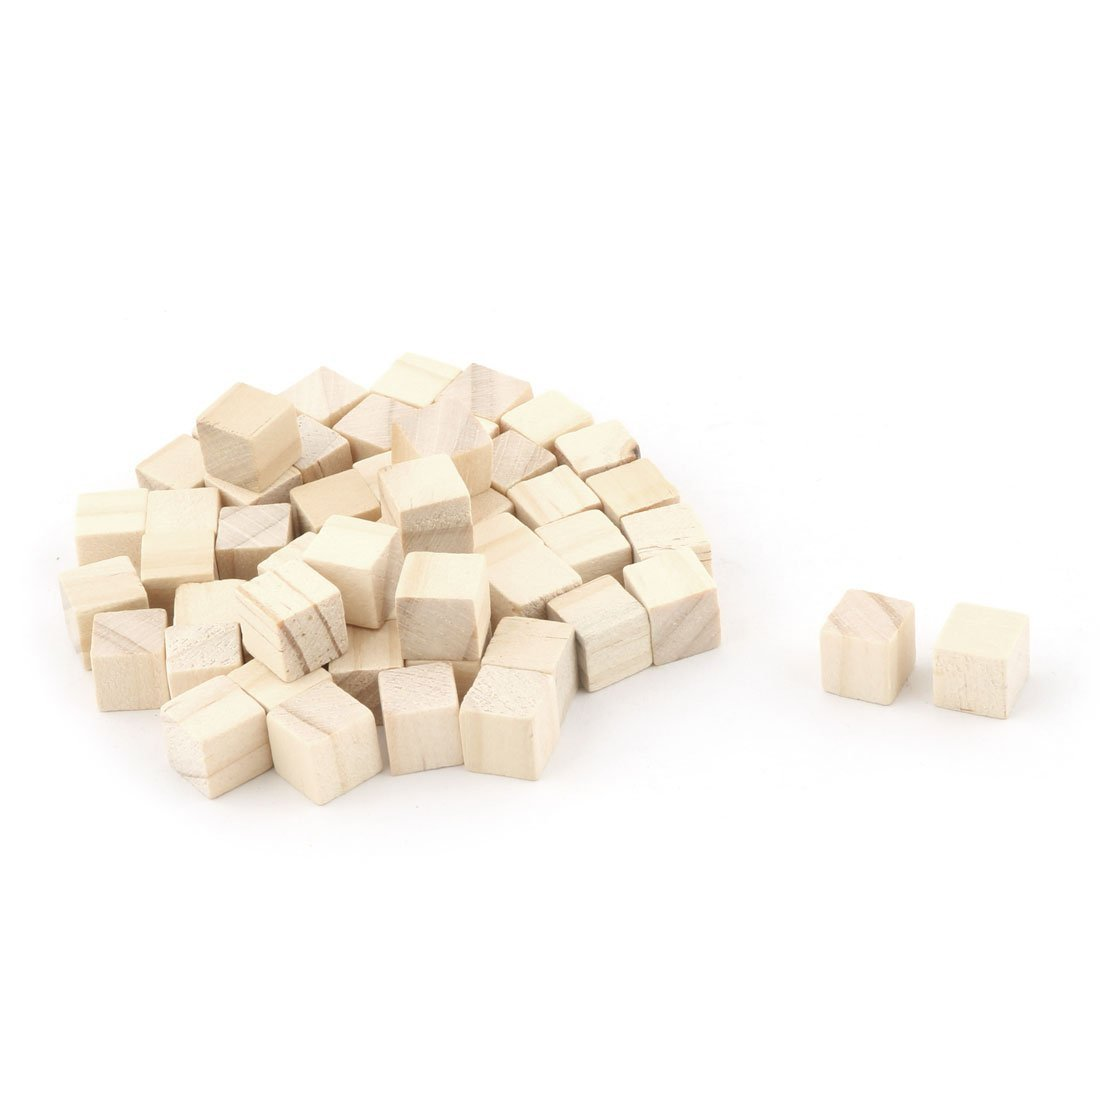 WINGONEER 250PCS Wooden Cubes - 10mm- Wood Square Blocks For Puzzle Making, Crafts & DIY Projects